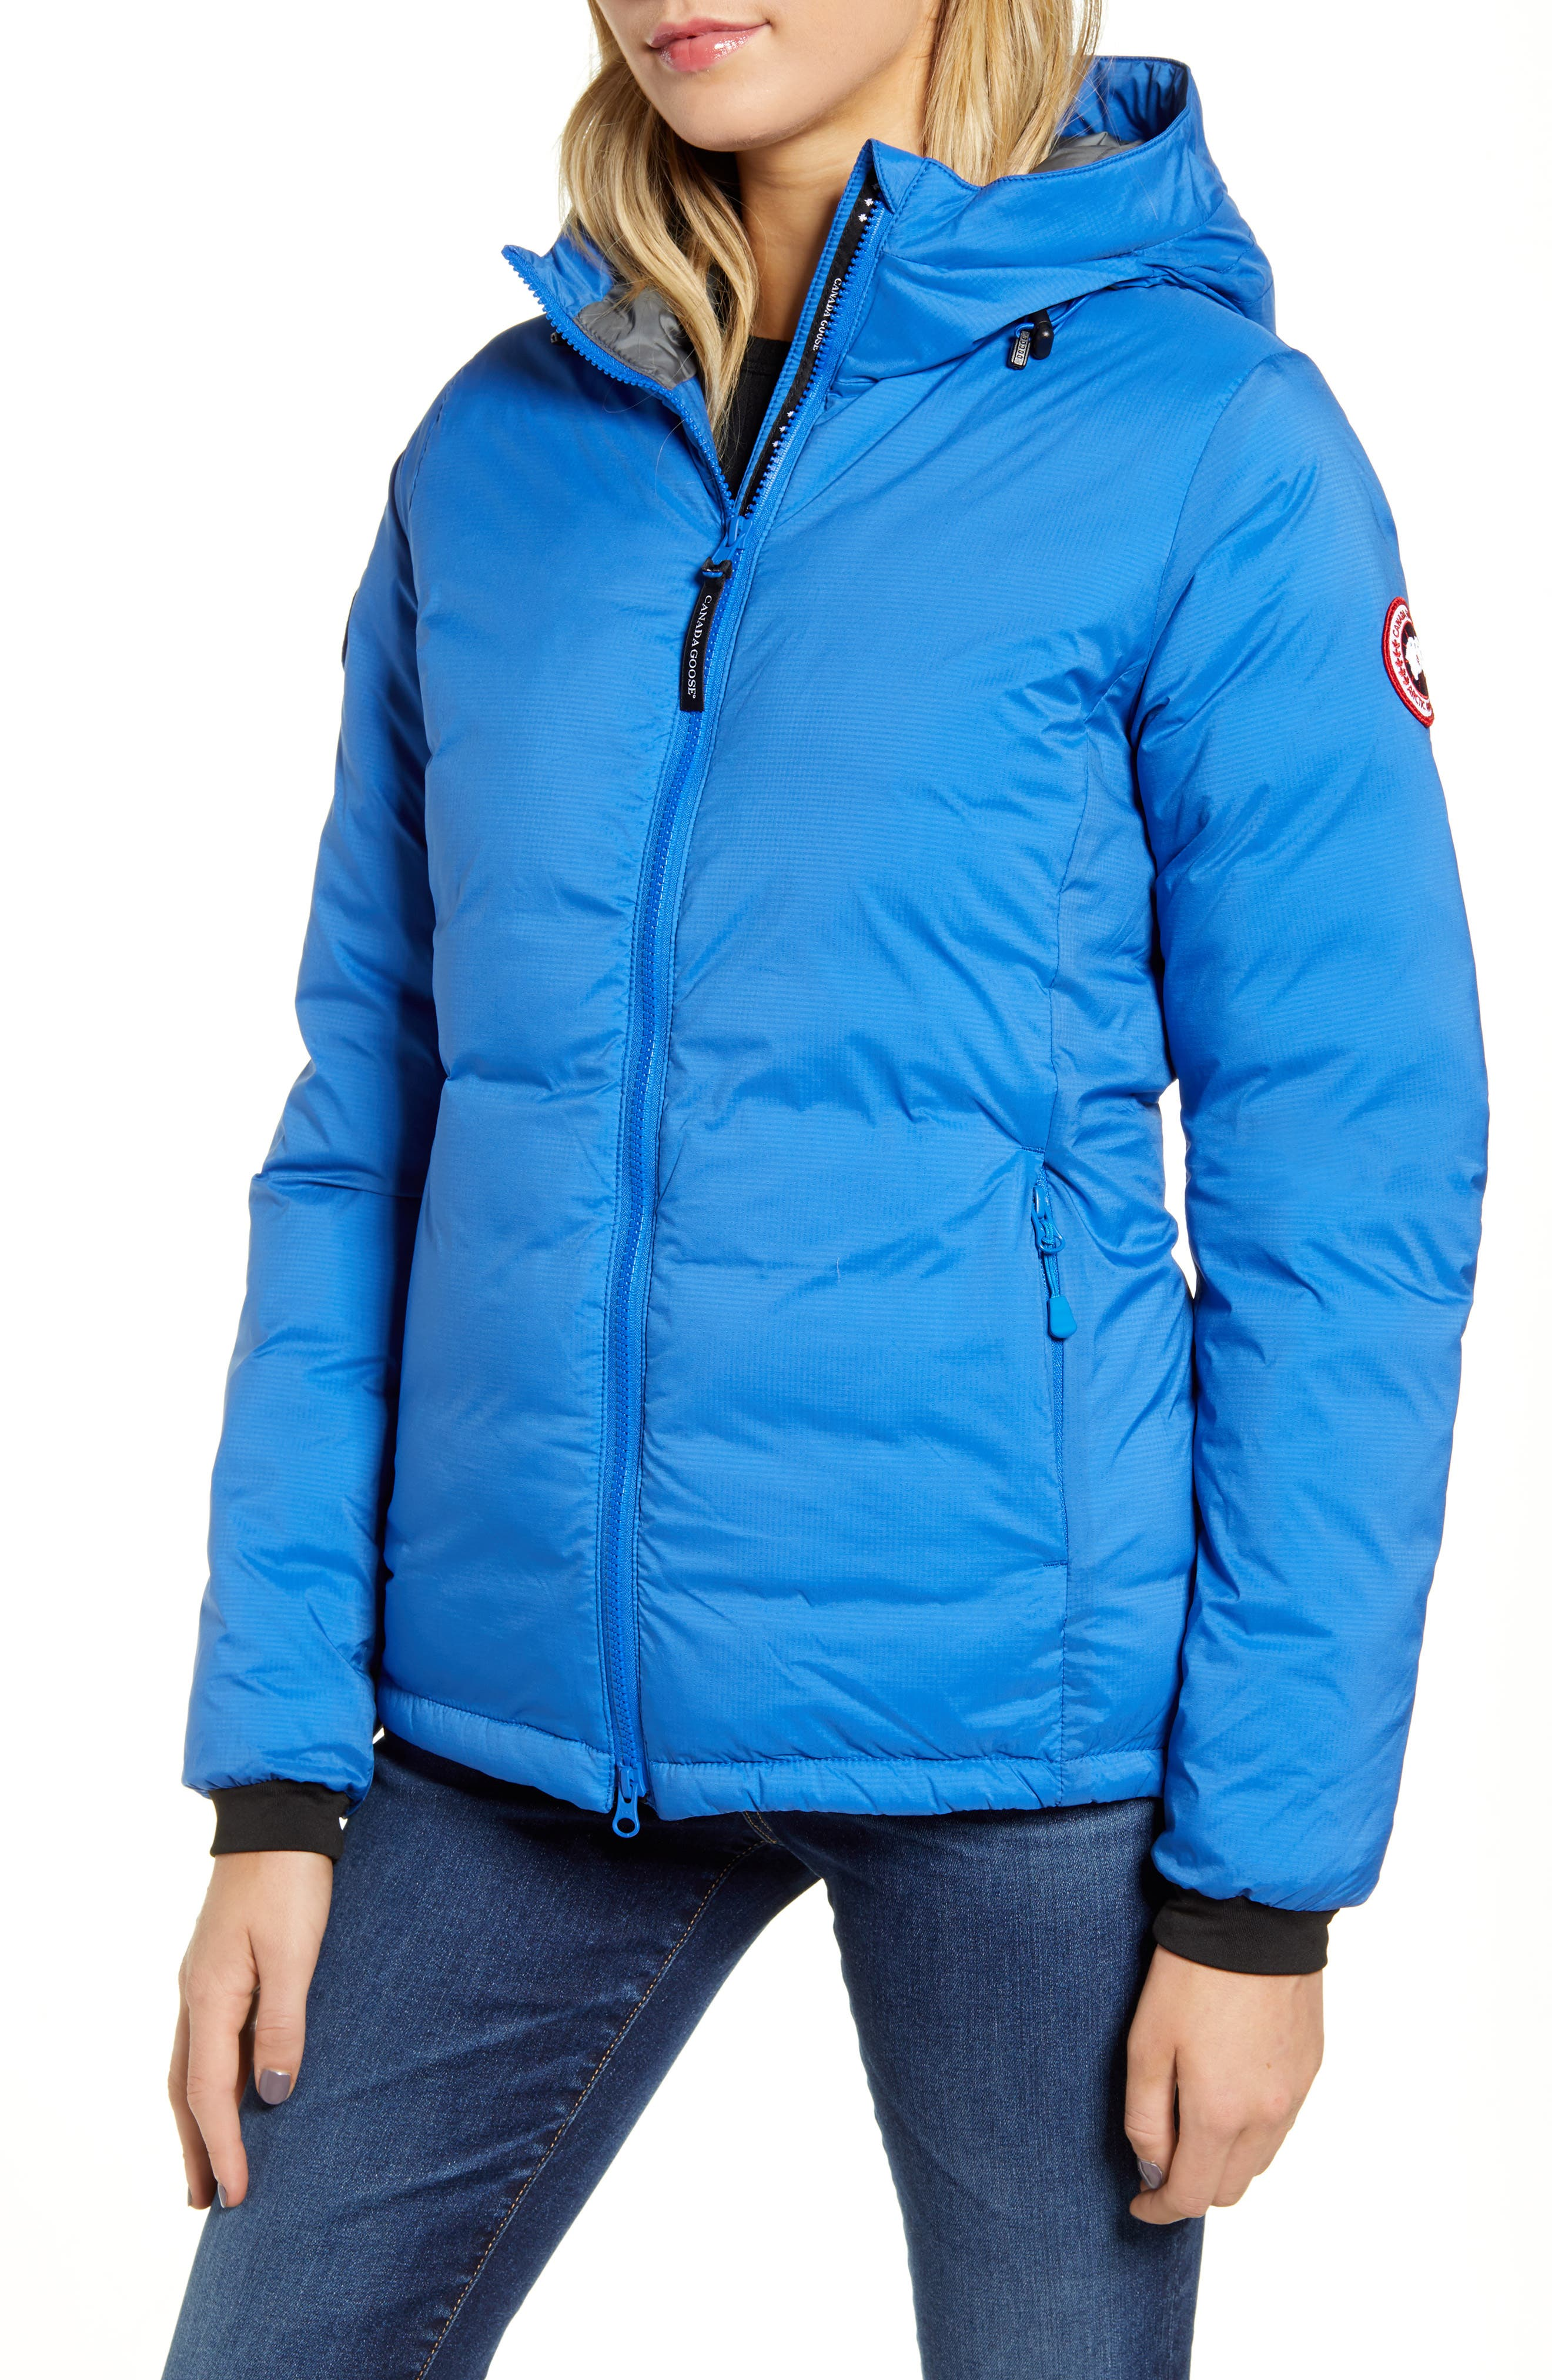 Ideal for backcountry activities and lightweight packing, a warm, wind-proof down jacket compresses to almost nothing for easy storage and portability. A drop-tail hem gives more coverage while its inner drawcord traps in the heat. Something else to warm your heart: purchasing this jacket helps support the efforts of Polar Bears International. Style Name: Canada Goose Pbi Camp Down Hoodie. Style Number: 5874385. Available in stores.